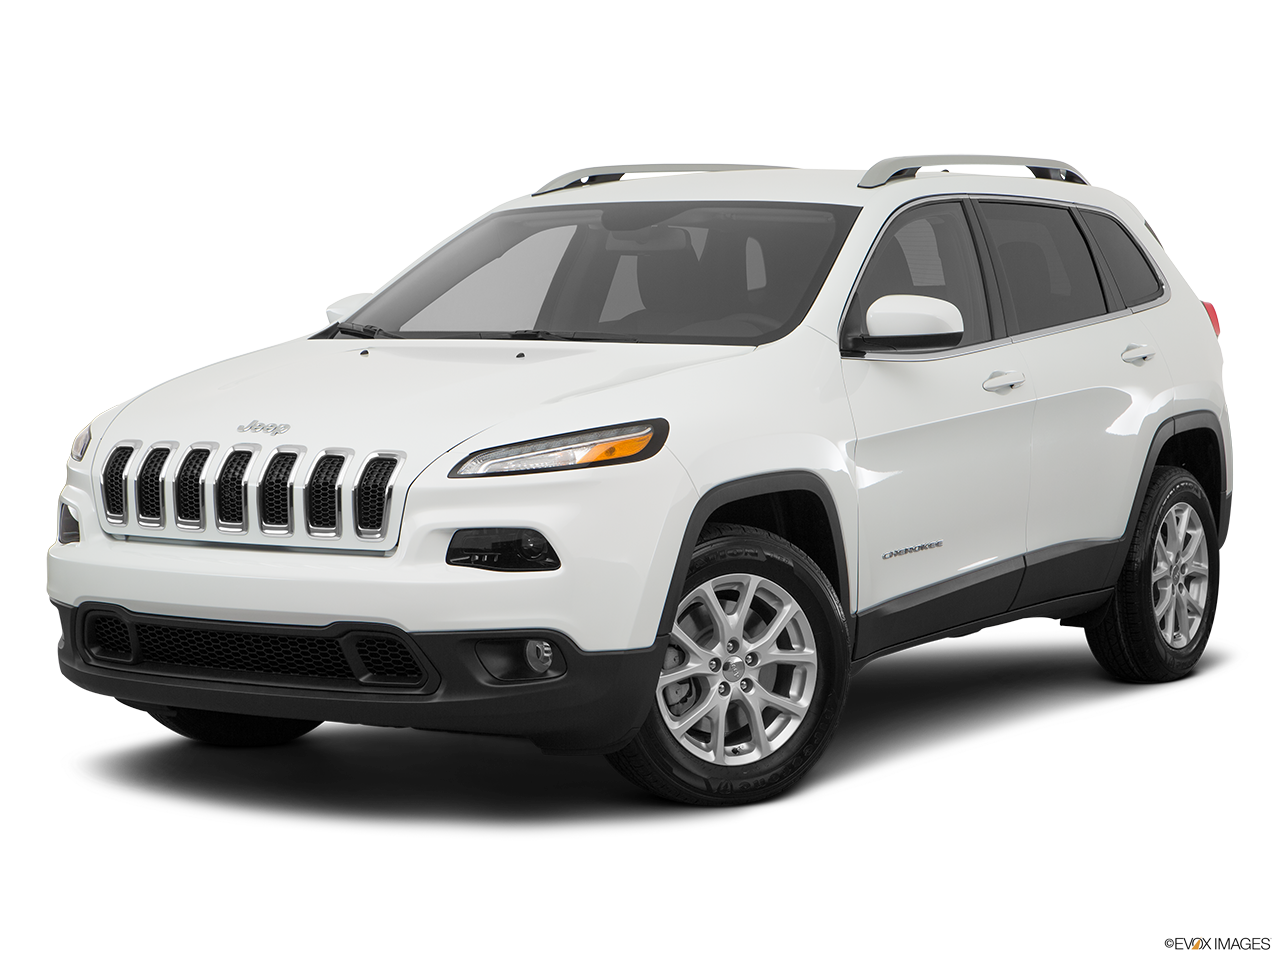 Test Drive A 2017 Jeep Cherokee at Cullman Chrysler Dodge Jeep Ram in Cullman